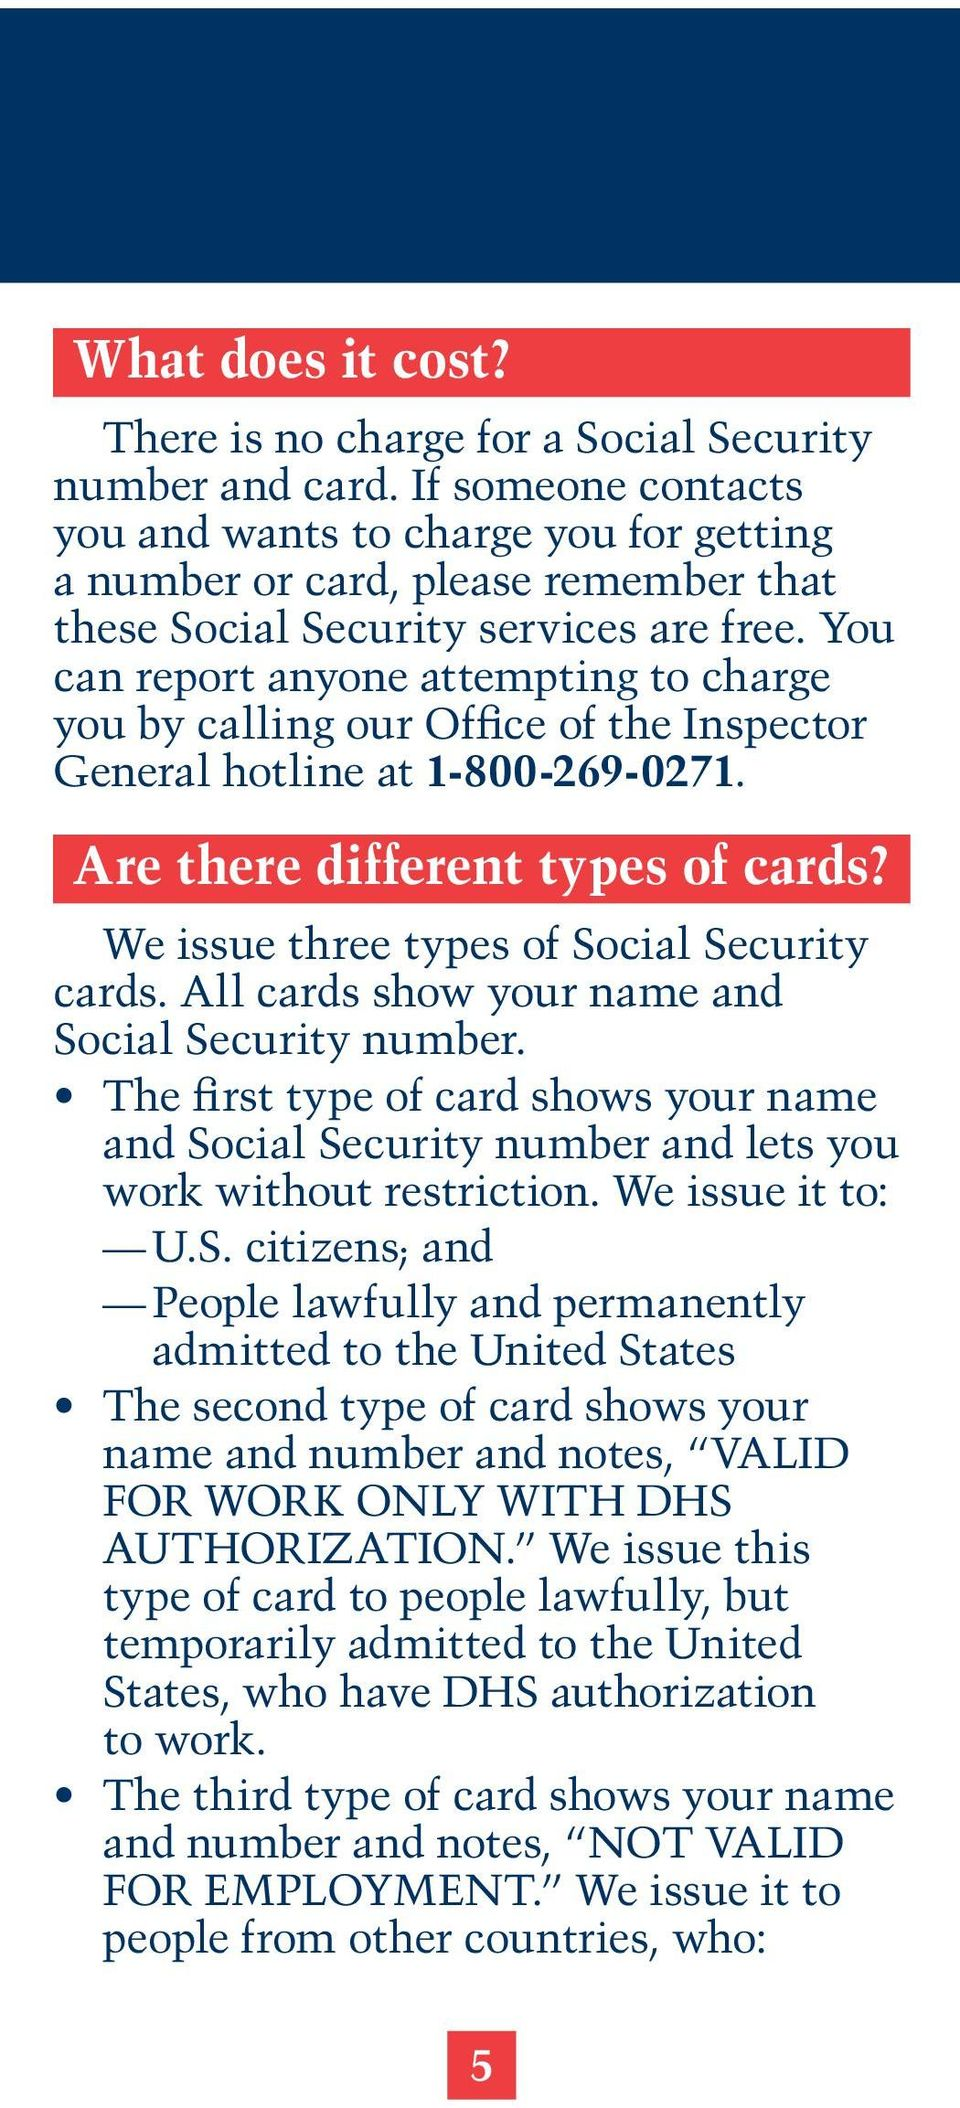 You can report anyone attempting to charge you by calling our Office of the Inspector General hotline at 1-800-269-0271. Are there different types of cards?